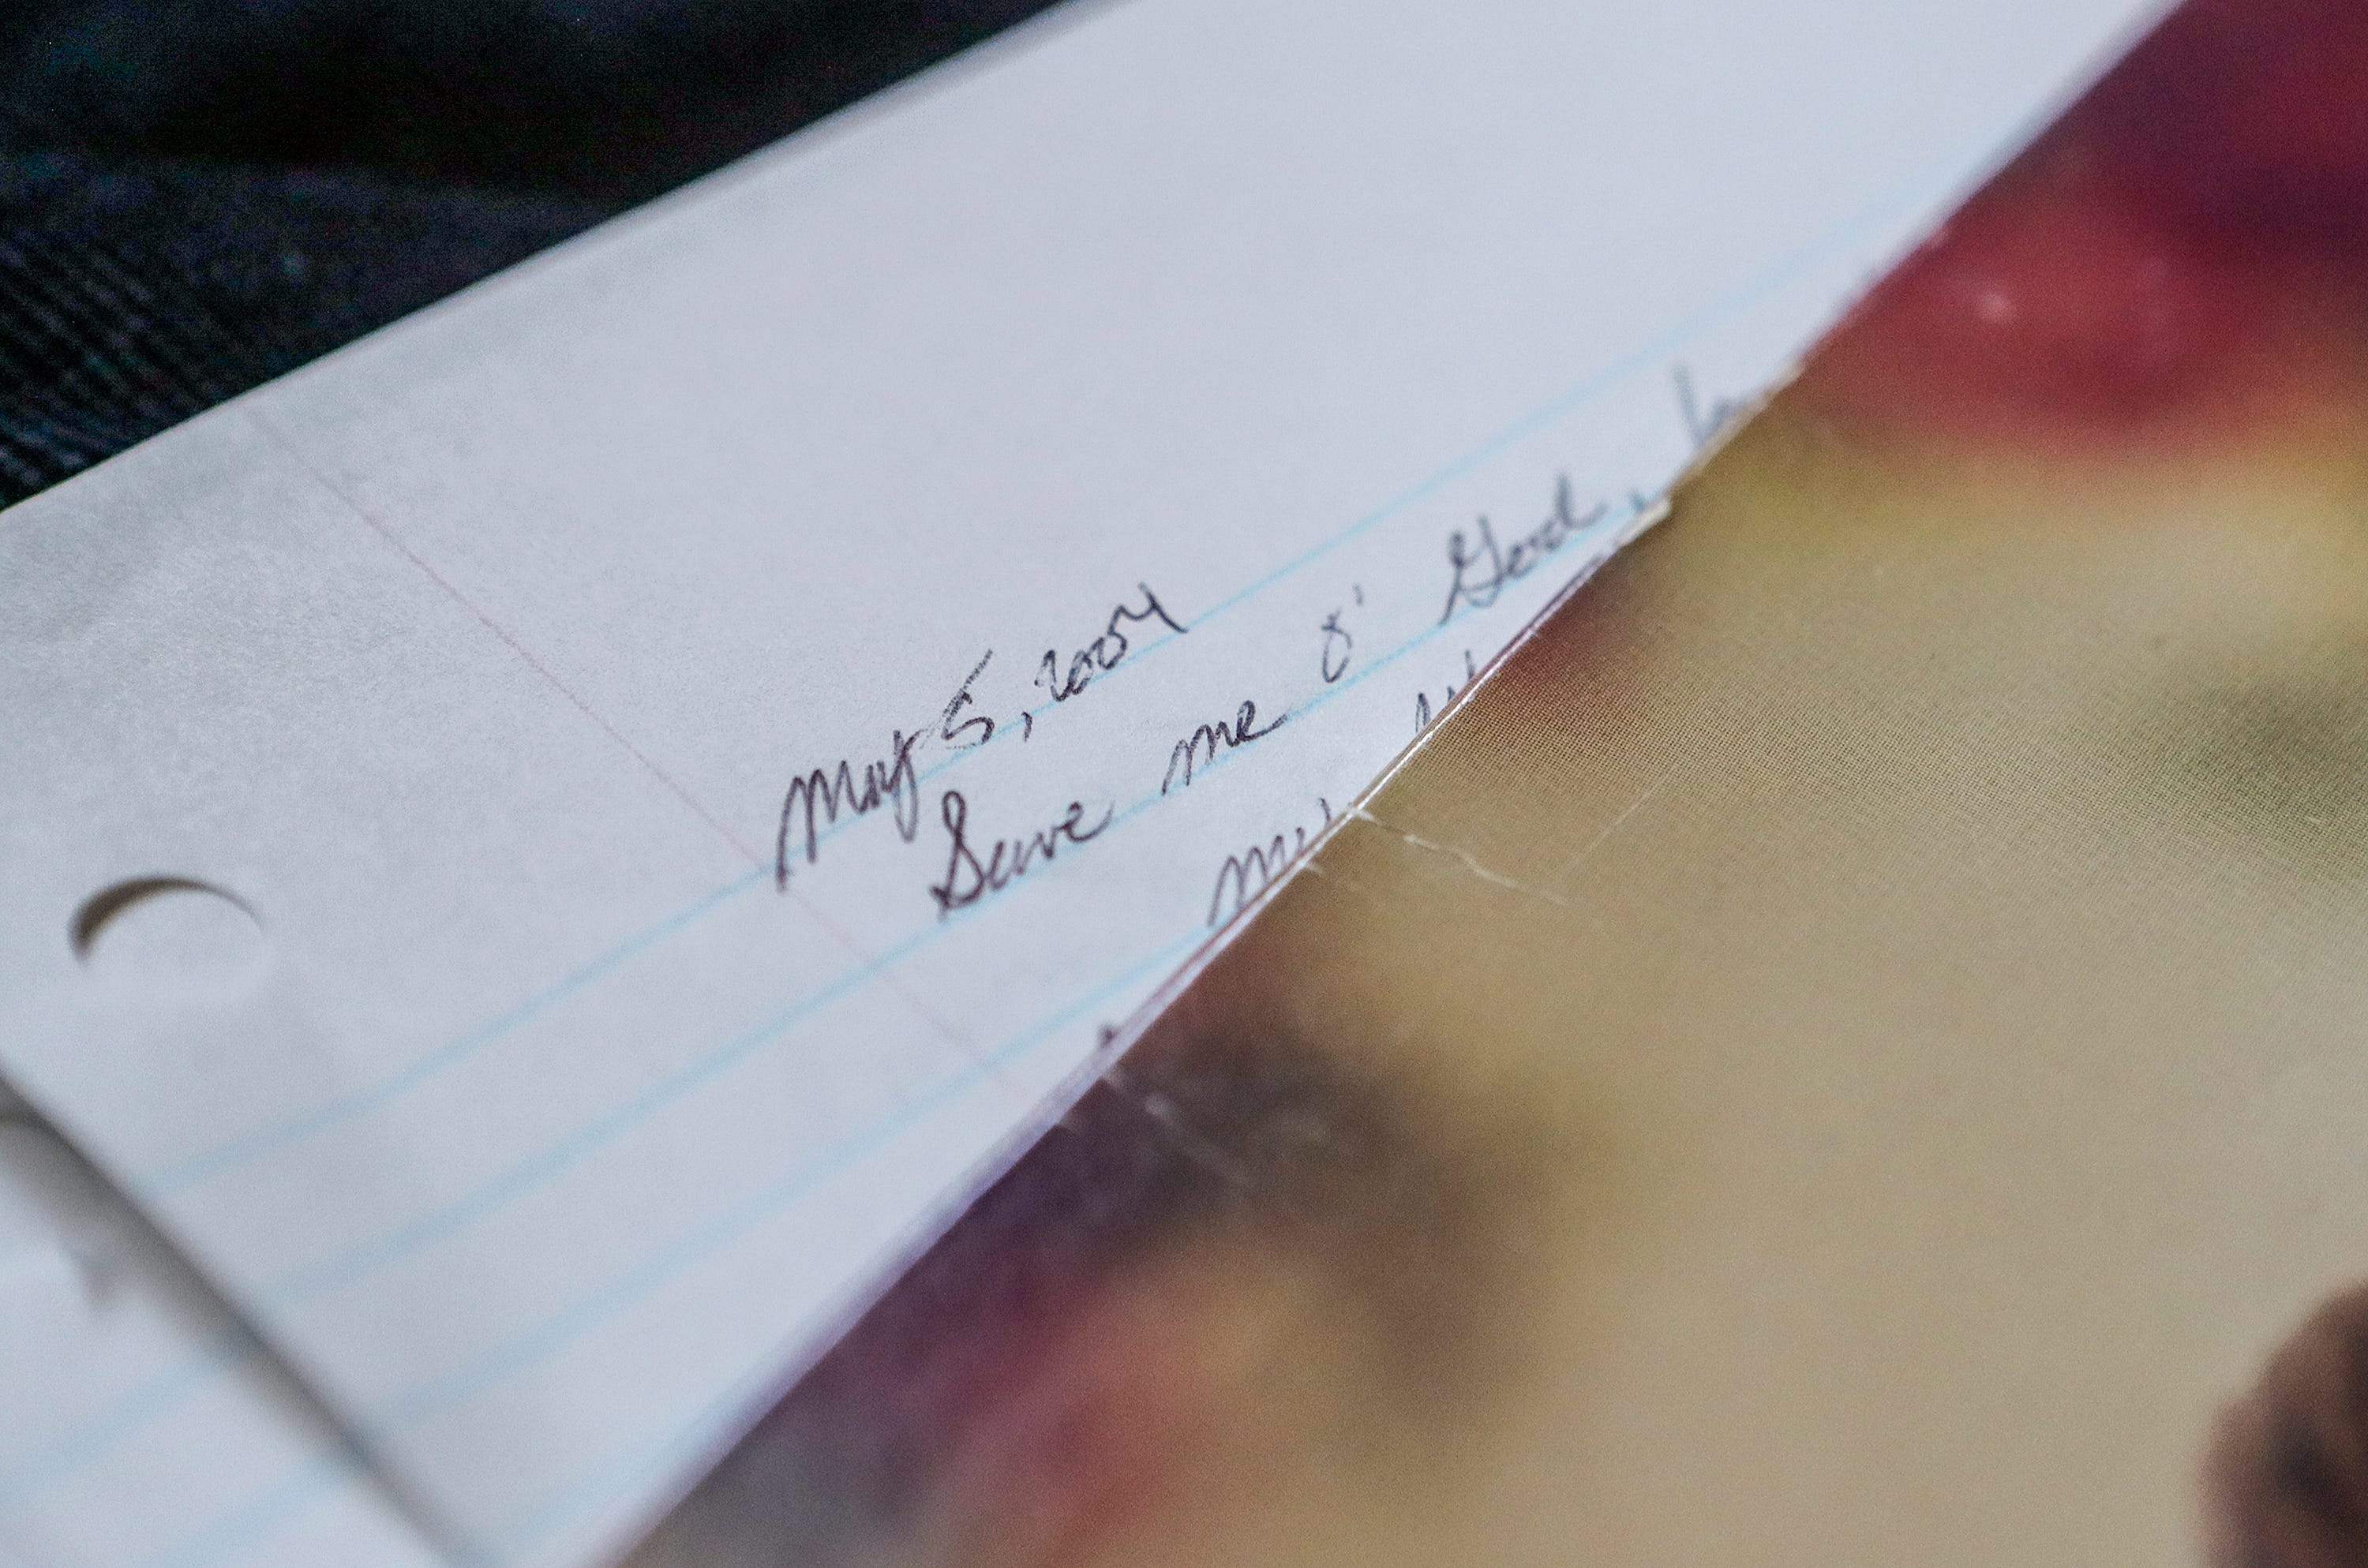 Save me O' God is the first line written on the first day of a journal kept by Rachael Denhollander.  She kept the journal that documented the affects of the abuse at the hands of USA Gymnastics doctor Larry Nassar.  Denhollander turned the journal over to prosecutors and was one of the key pieces of evidence in the trial. August 2019